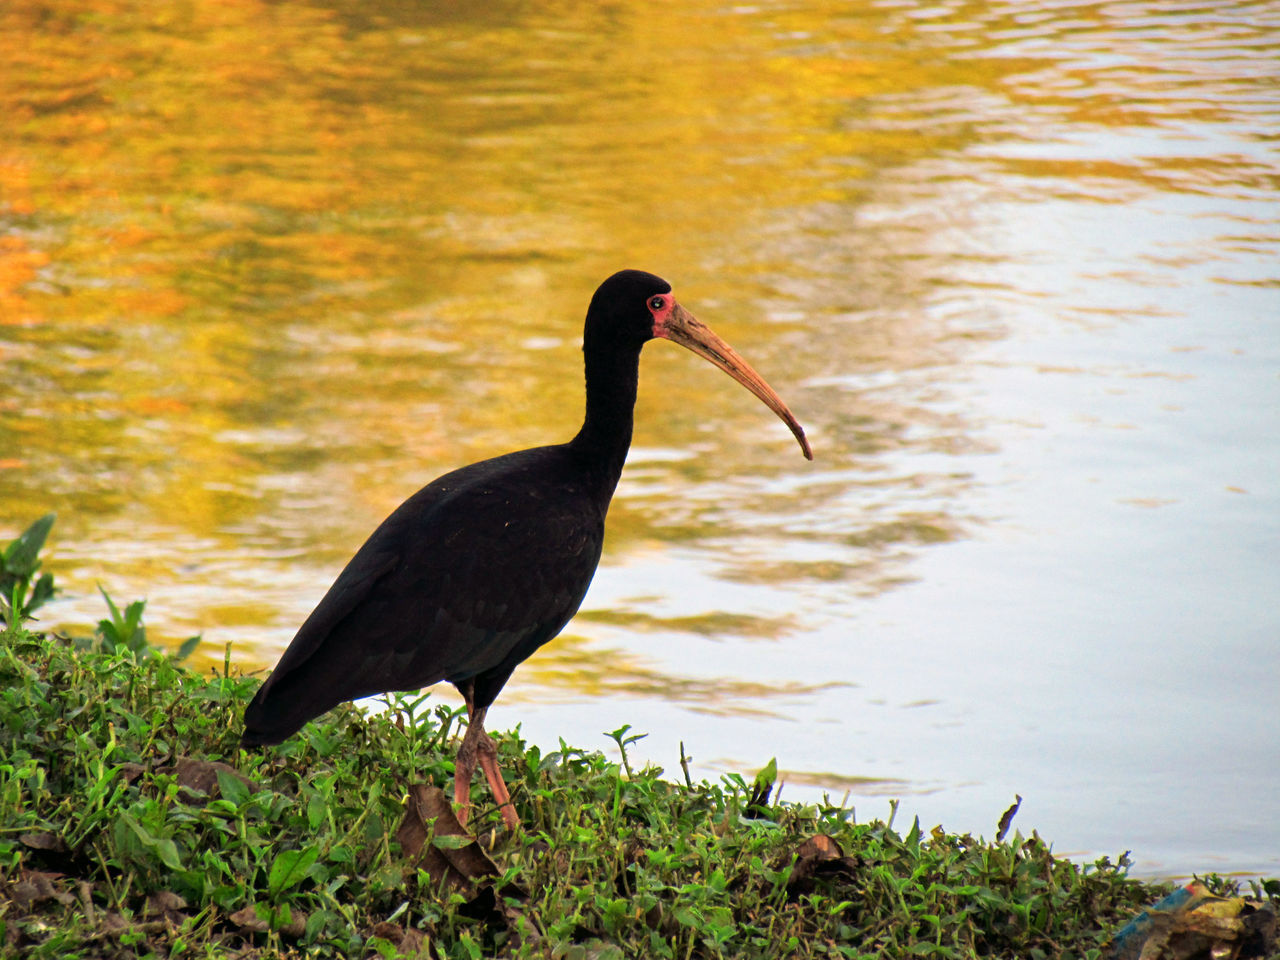 Phimosus infuscatus Avian Beauty In Nature Bird Bird Photography Birds Birds_collection Birdwatching Black Bird Grass Growth Ibis Lake Lake View Lakeside Lakeview Long Beak Nature Plant Tranquil Scene Tranquility Water